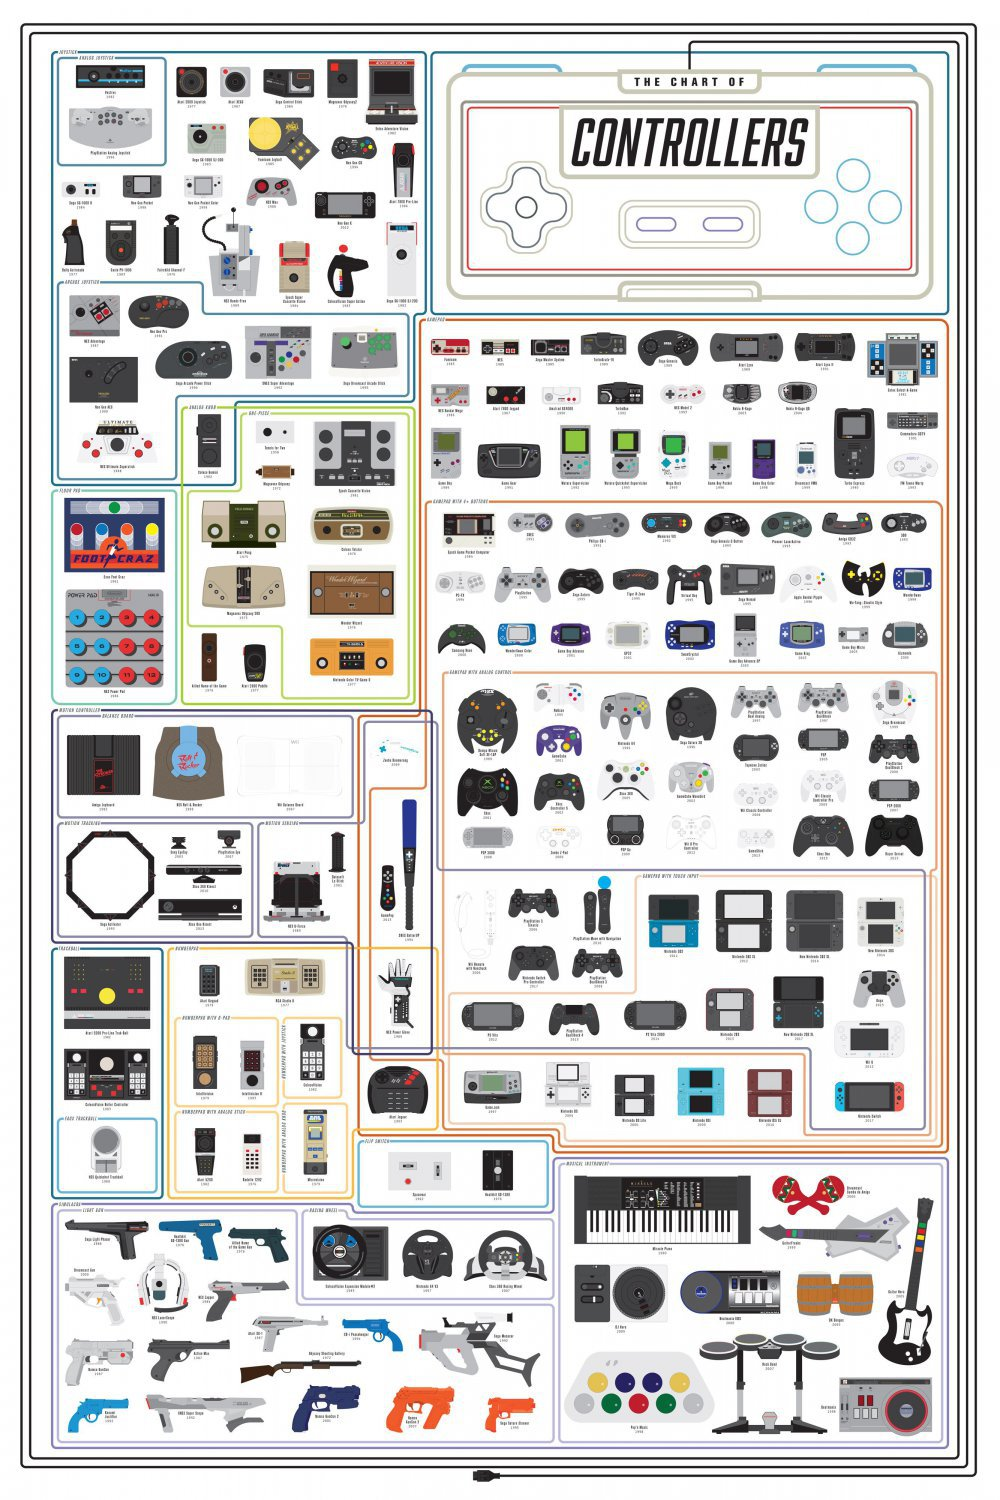 The Chart of Controllers  28x40 inches Canvas Print